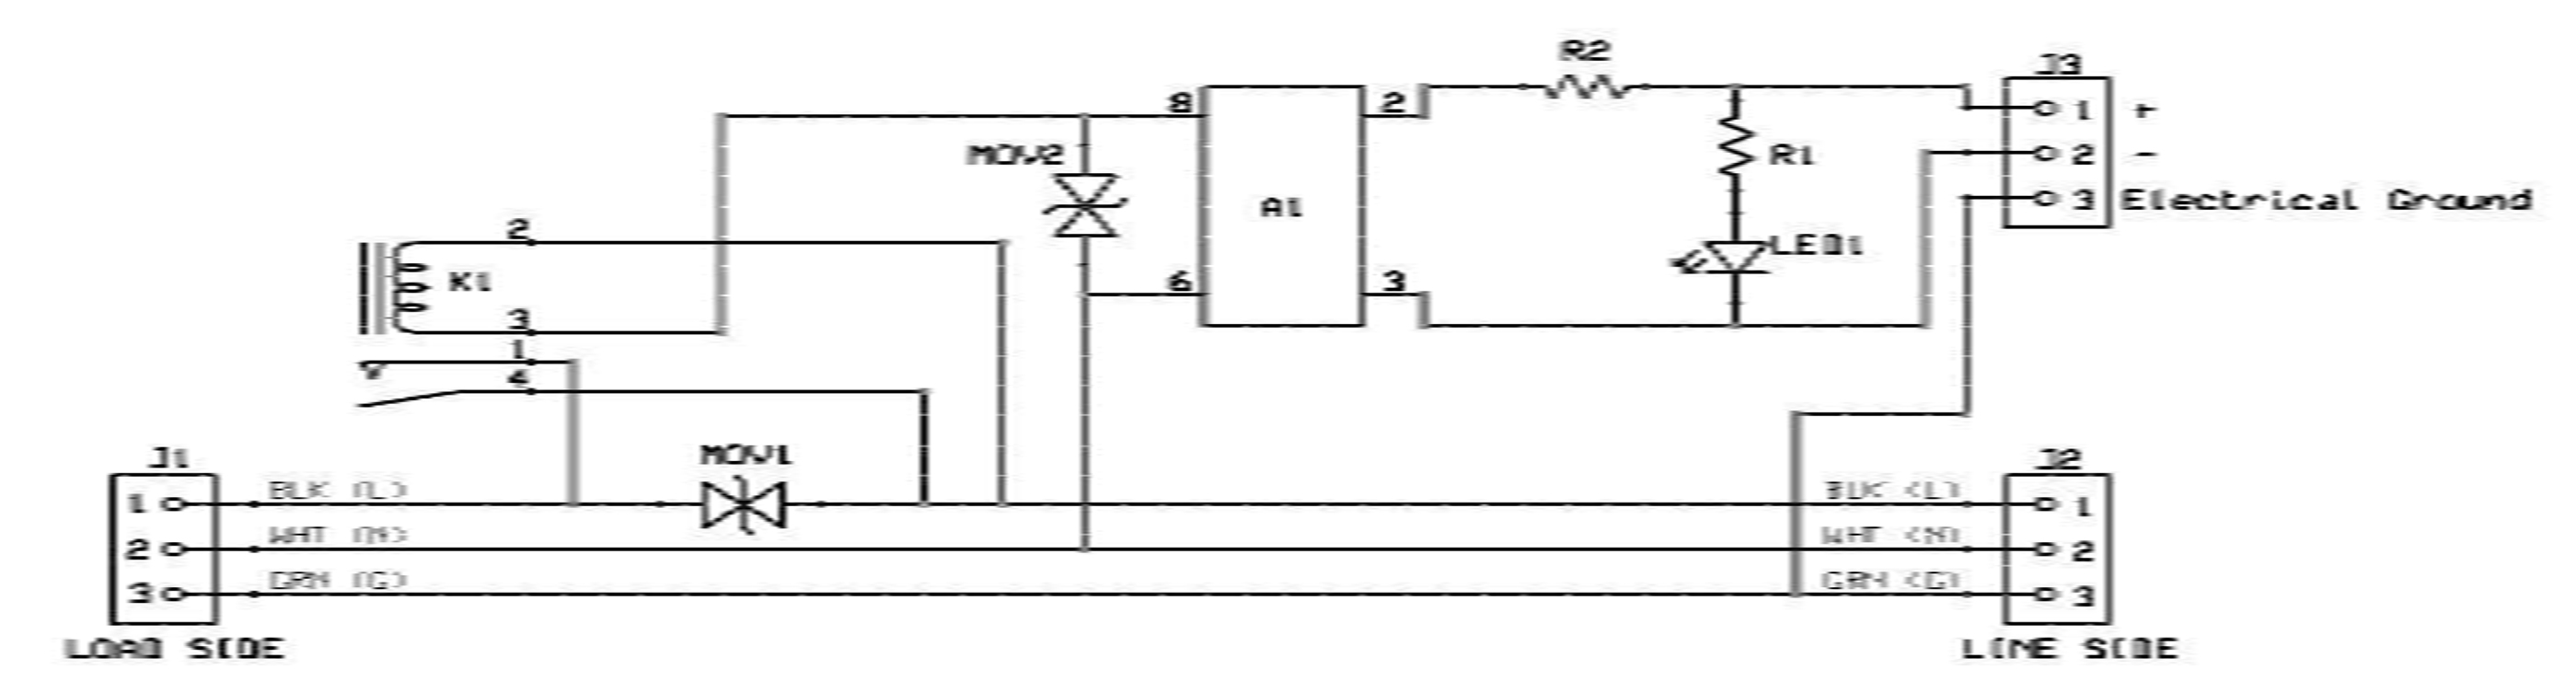 Drivers Relays And Solid State Relays Mbed - Static relay working principle